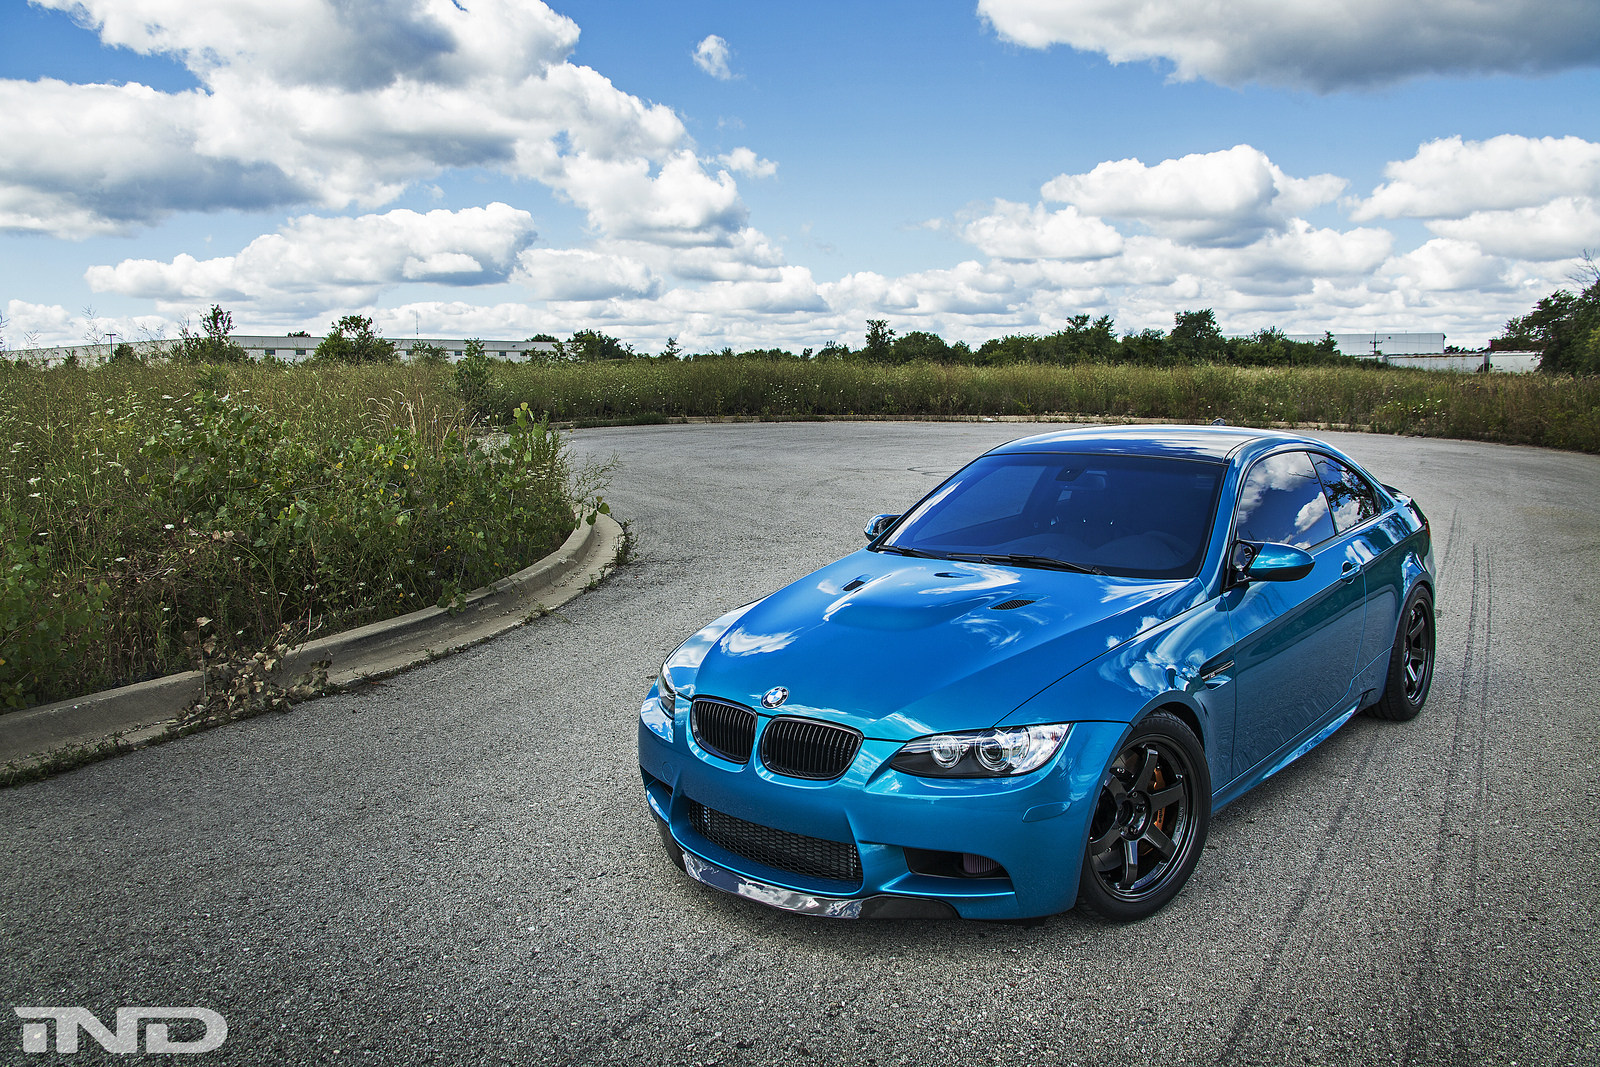 atlantis blue bmw e92 m3 from ind looks stunning. Black Bedroom Furniture Sets. Home Design Ideas